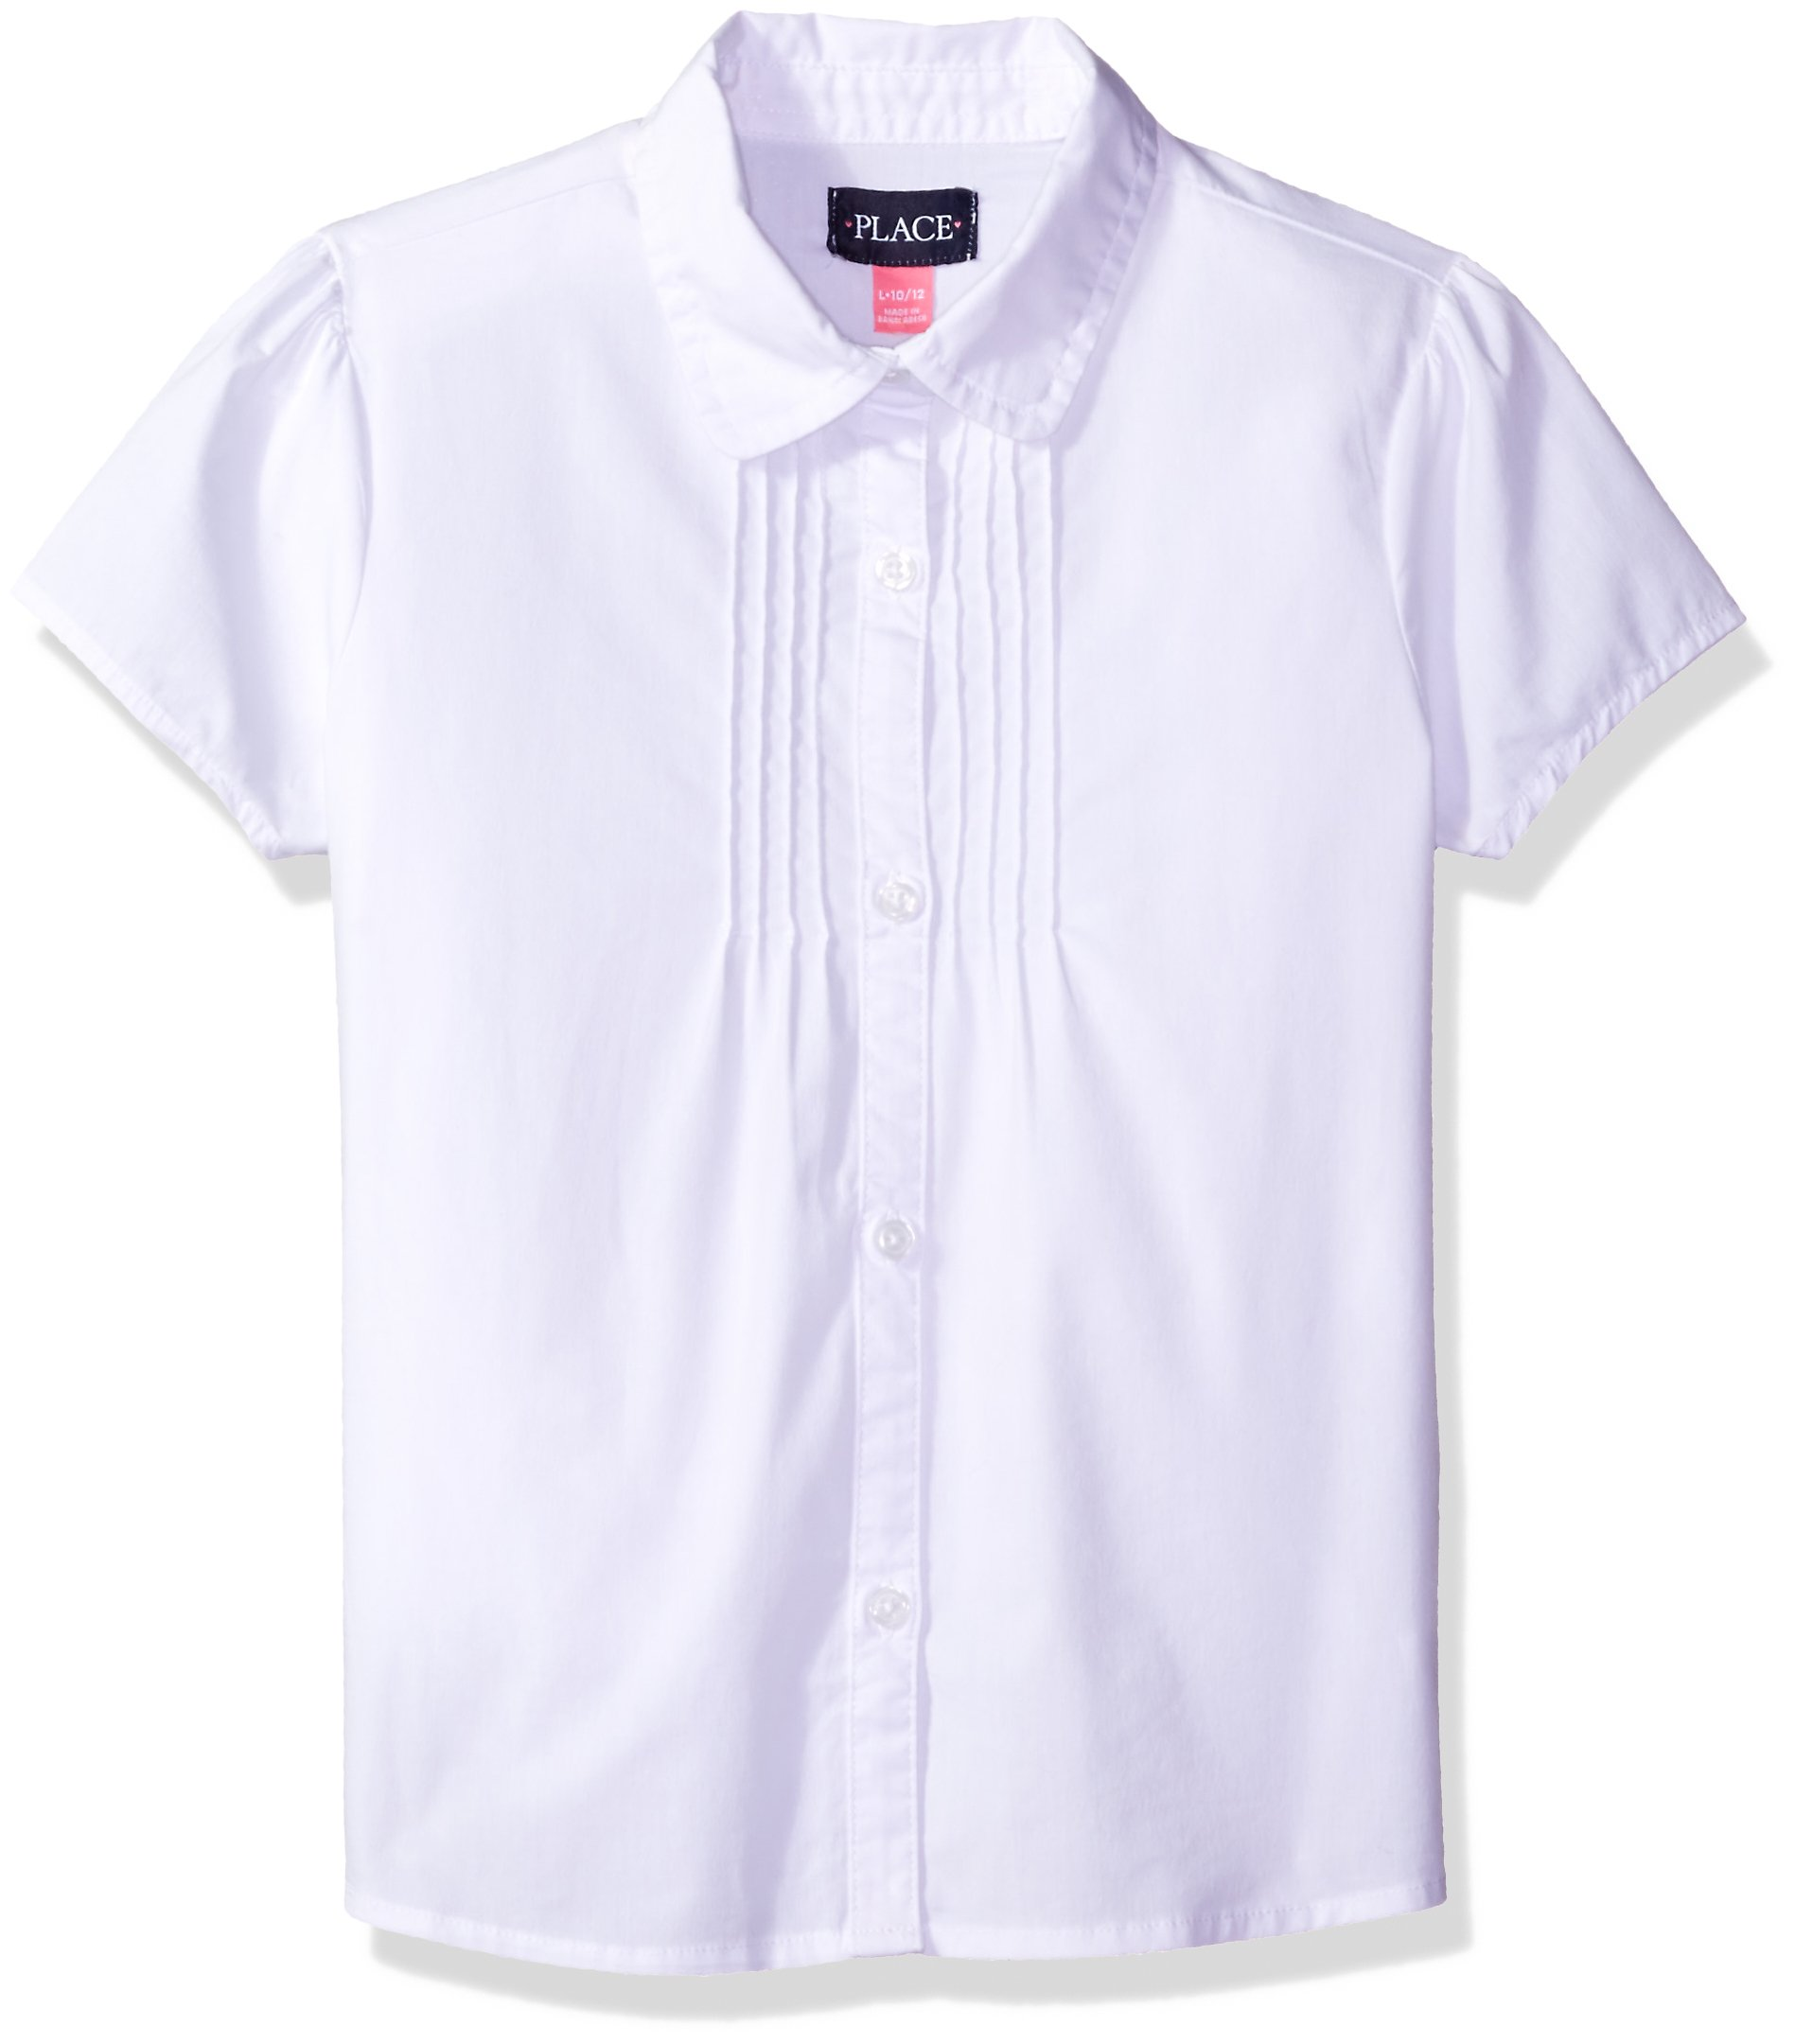 The Children's Place Big Girls' Uniform Short Sleeve Blouse, White 44392, Large/10/12